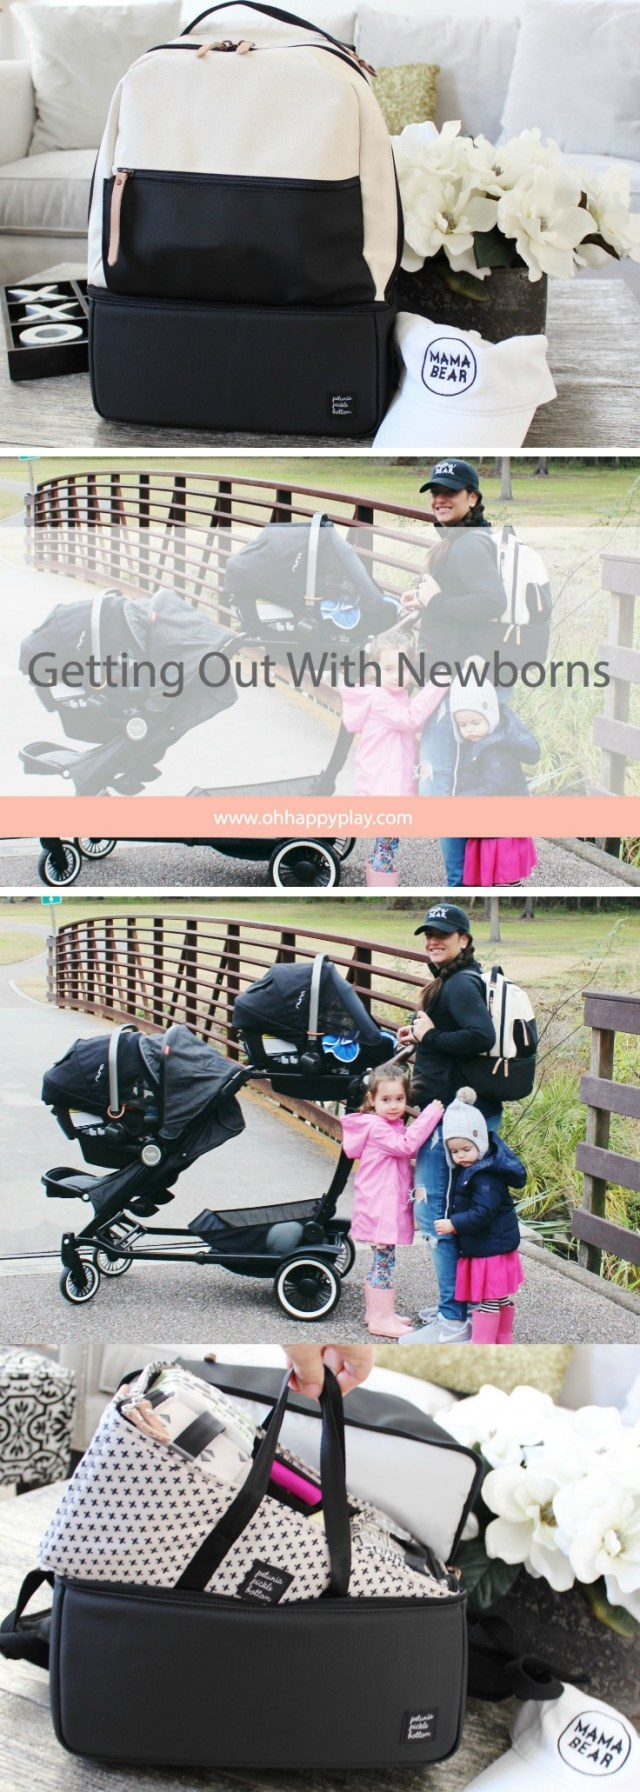 Sometimes getting out with newborns is a daunting task but it doesn't have to be. Oh Happy Play, Florida Motherhood blogger shares some tips!